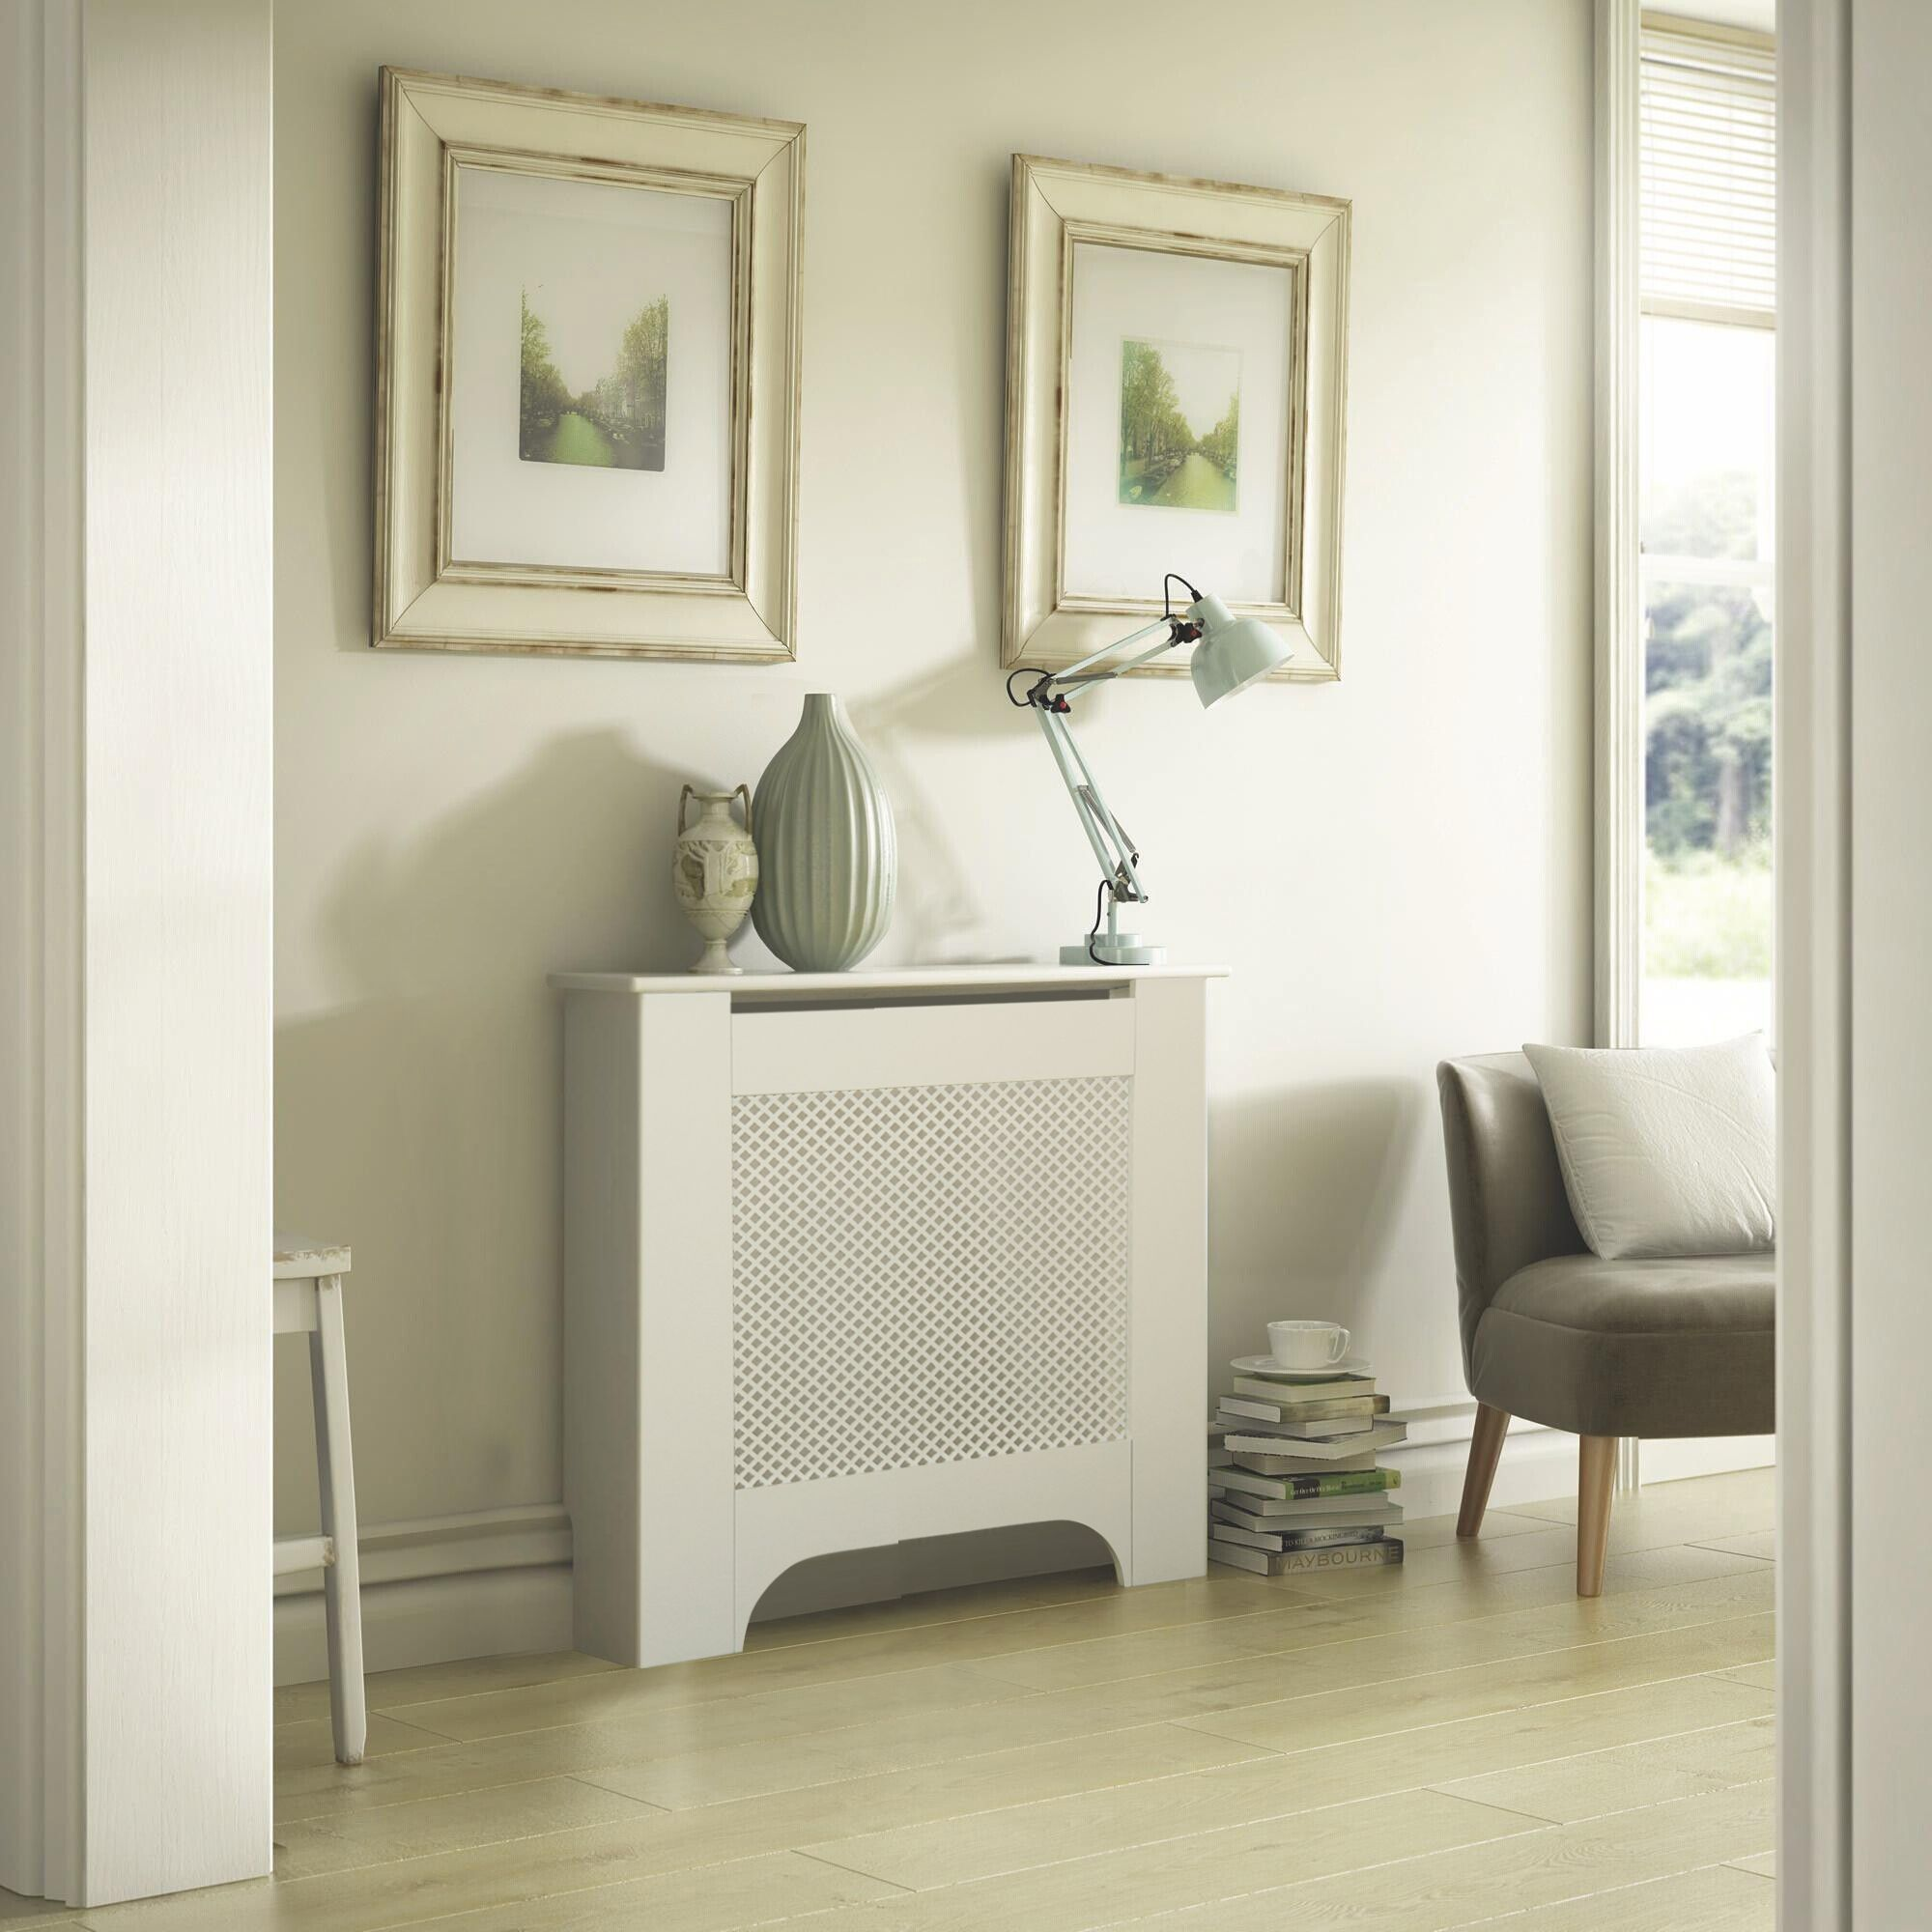 Mayfair Mini White Painted Radiator Cover